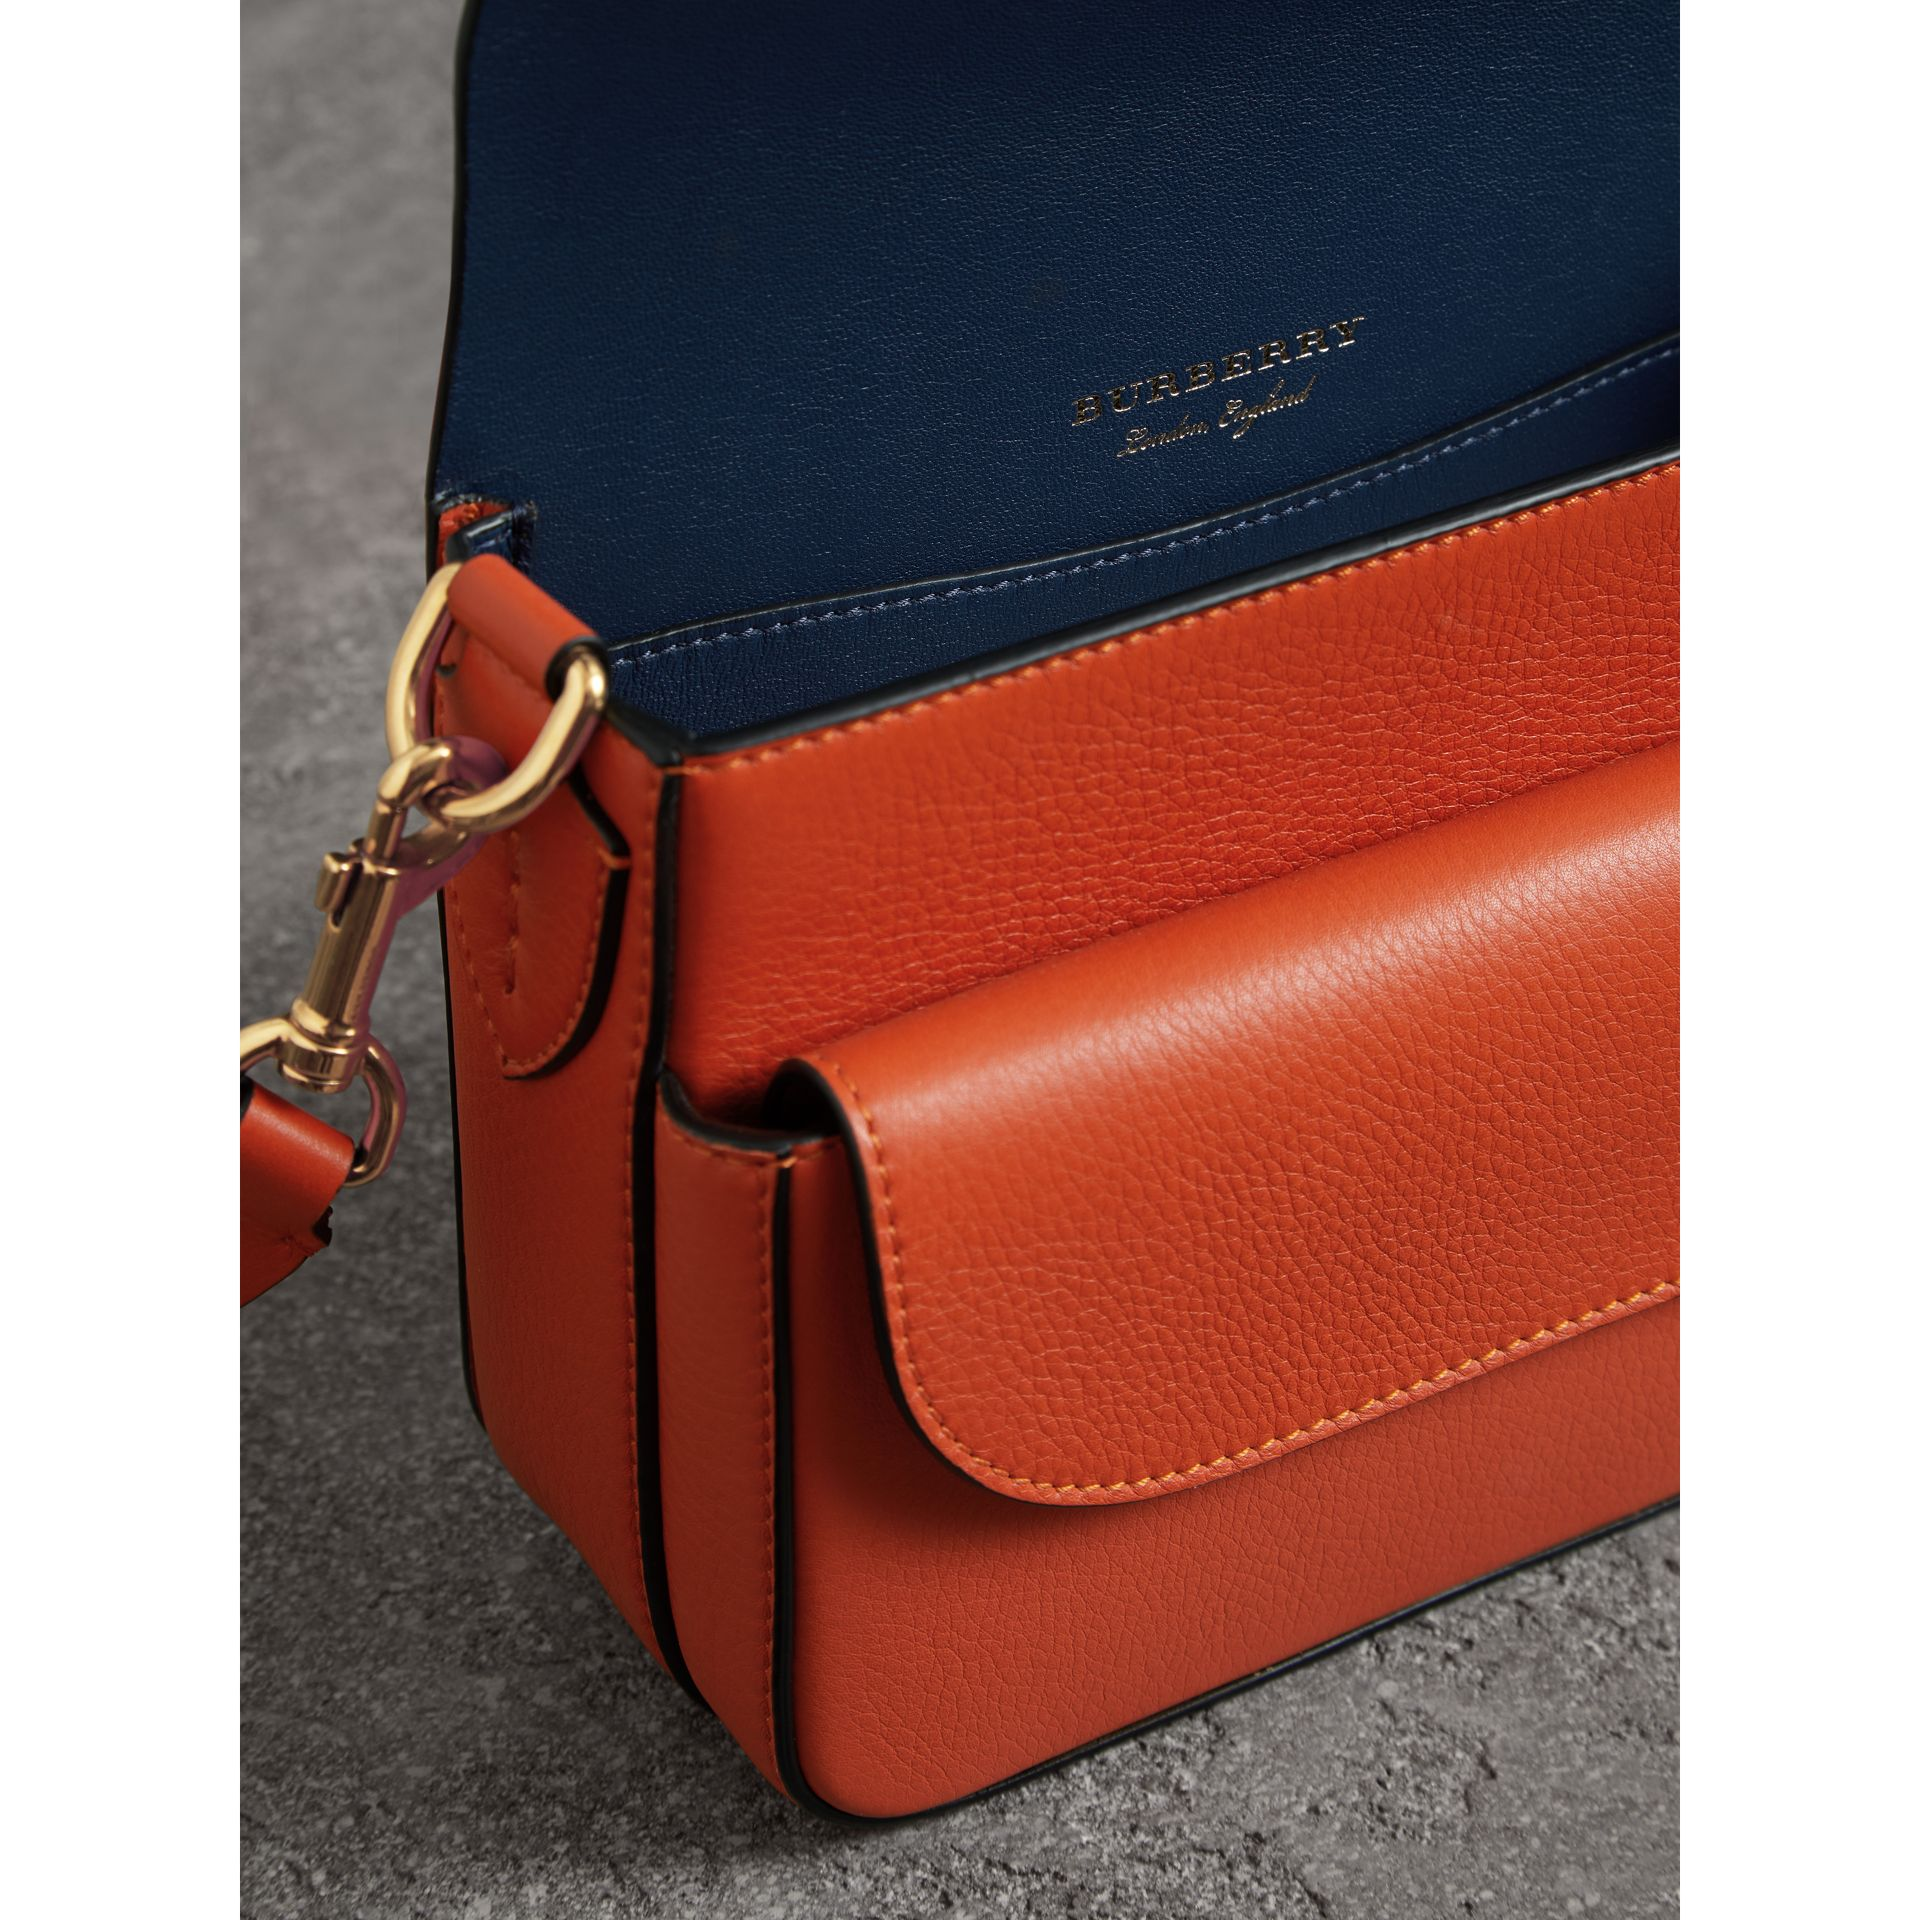 The Square Satchel in Leather in Clementine - Women | Burberry - gallery image 5